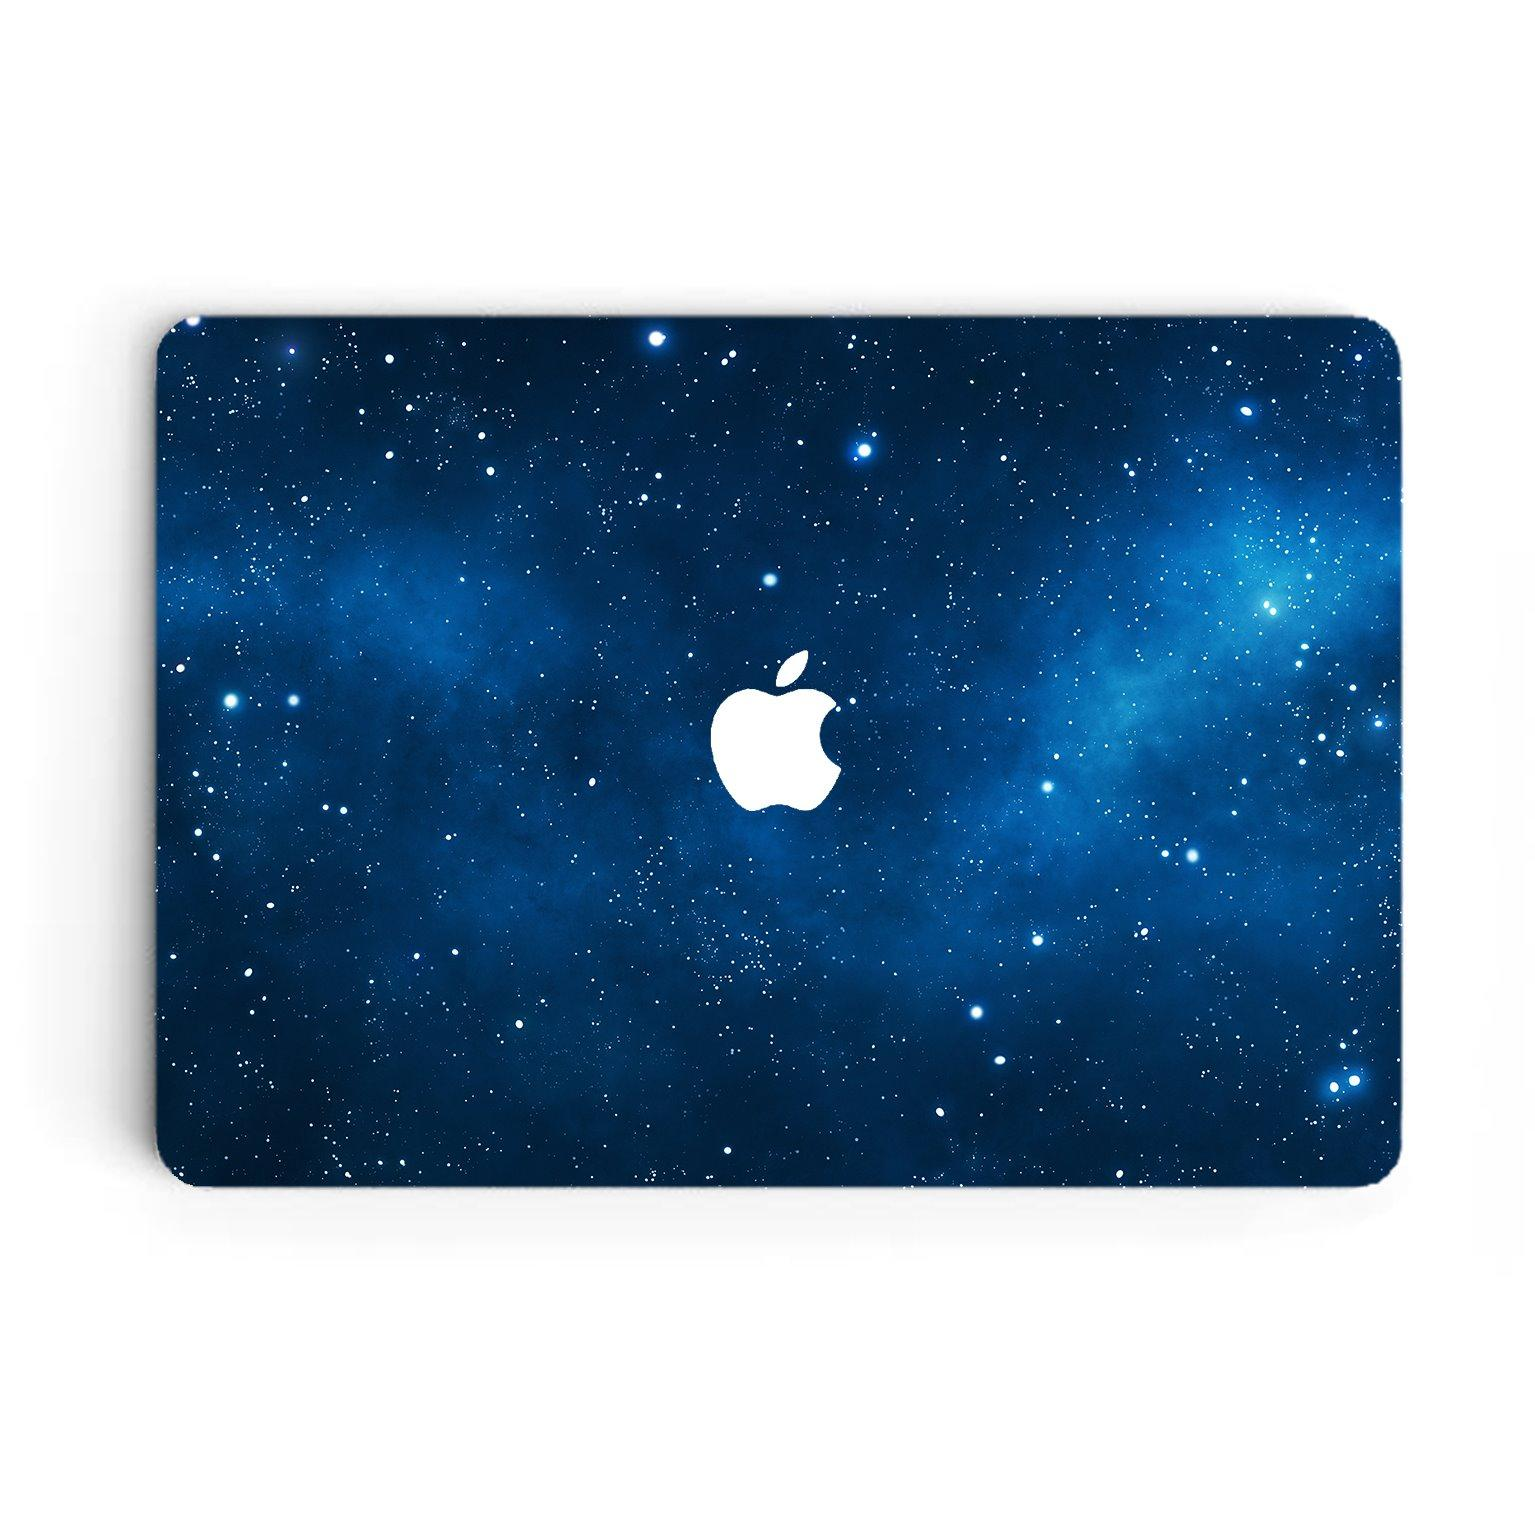 Laptop Macbook Skin Sticker Decal Galaxy For Air 13 Inch Instock Best Buy